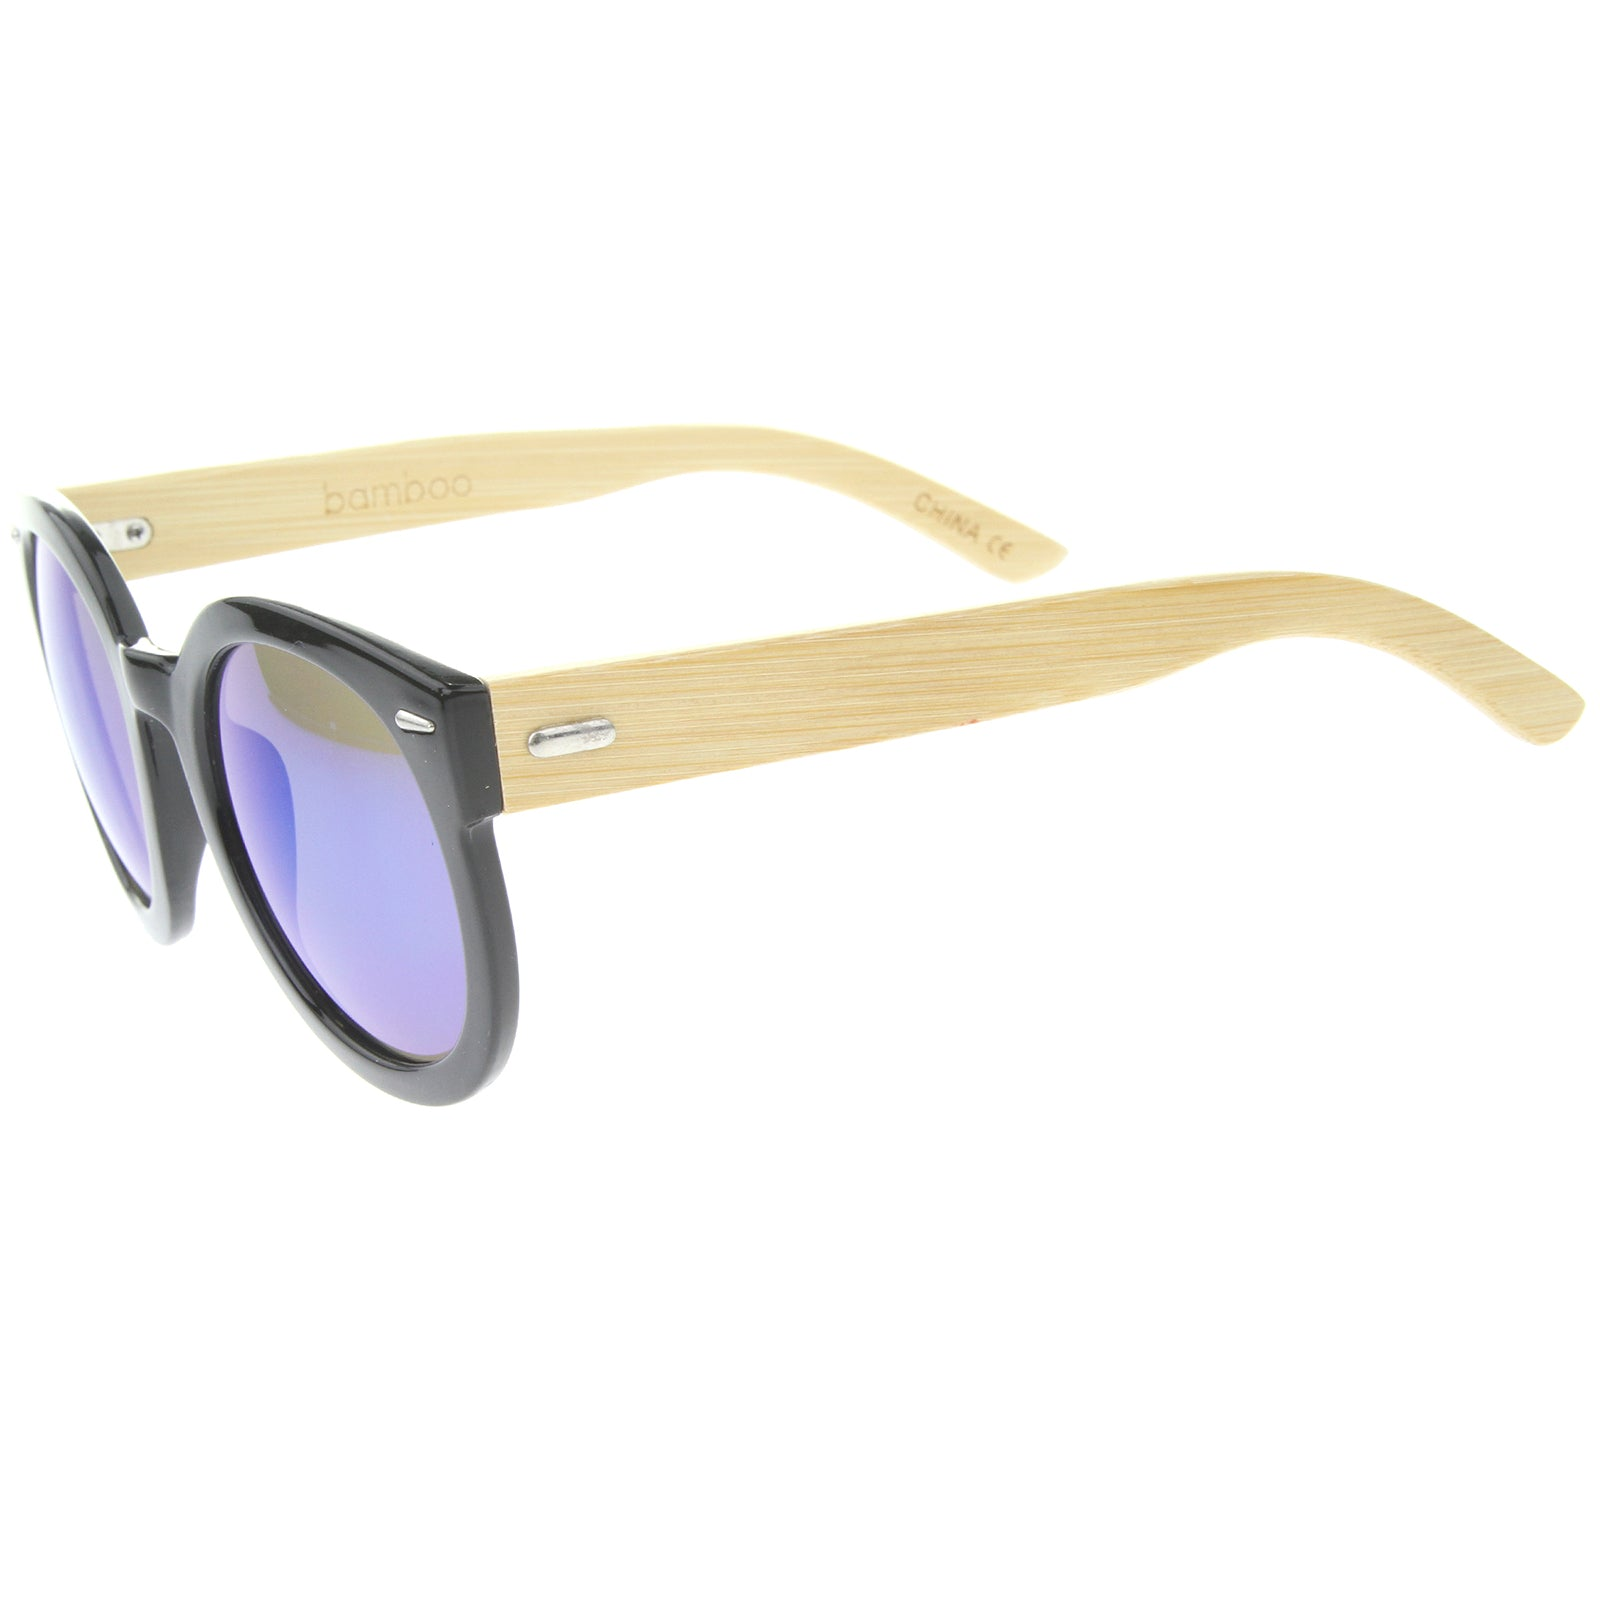 Womens Oversized Sunglasses With UV400 Protected Mirrored Lens - sunglass.la - 3